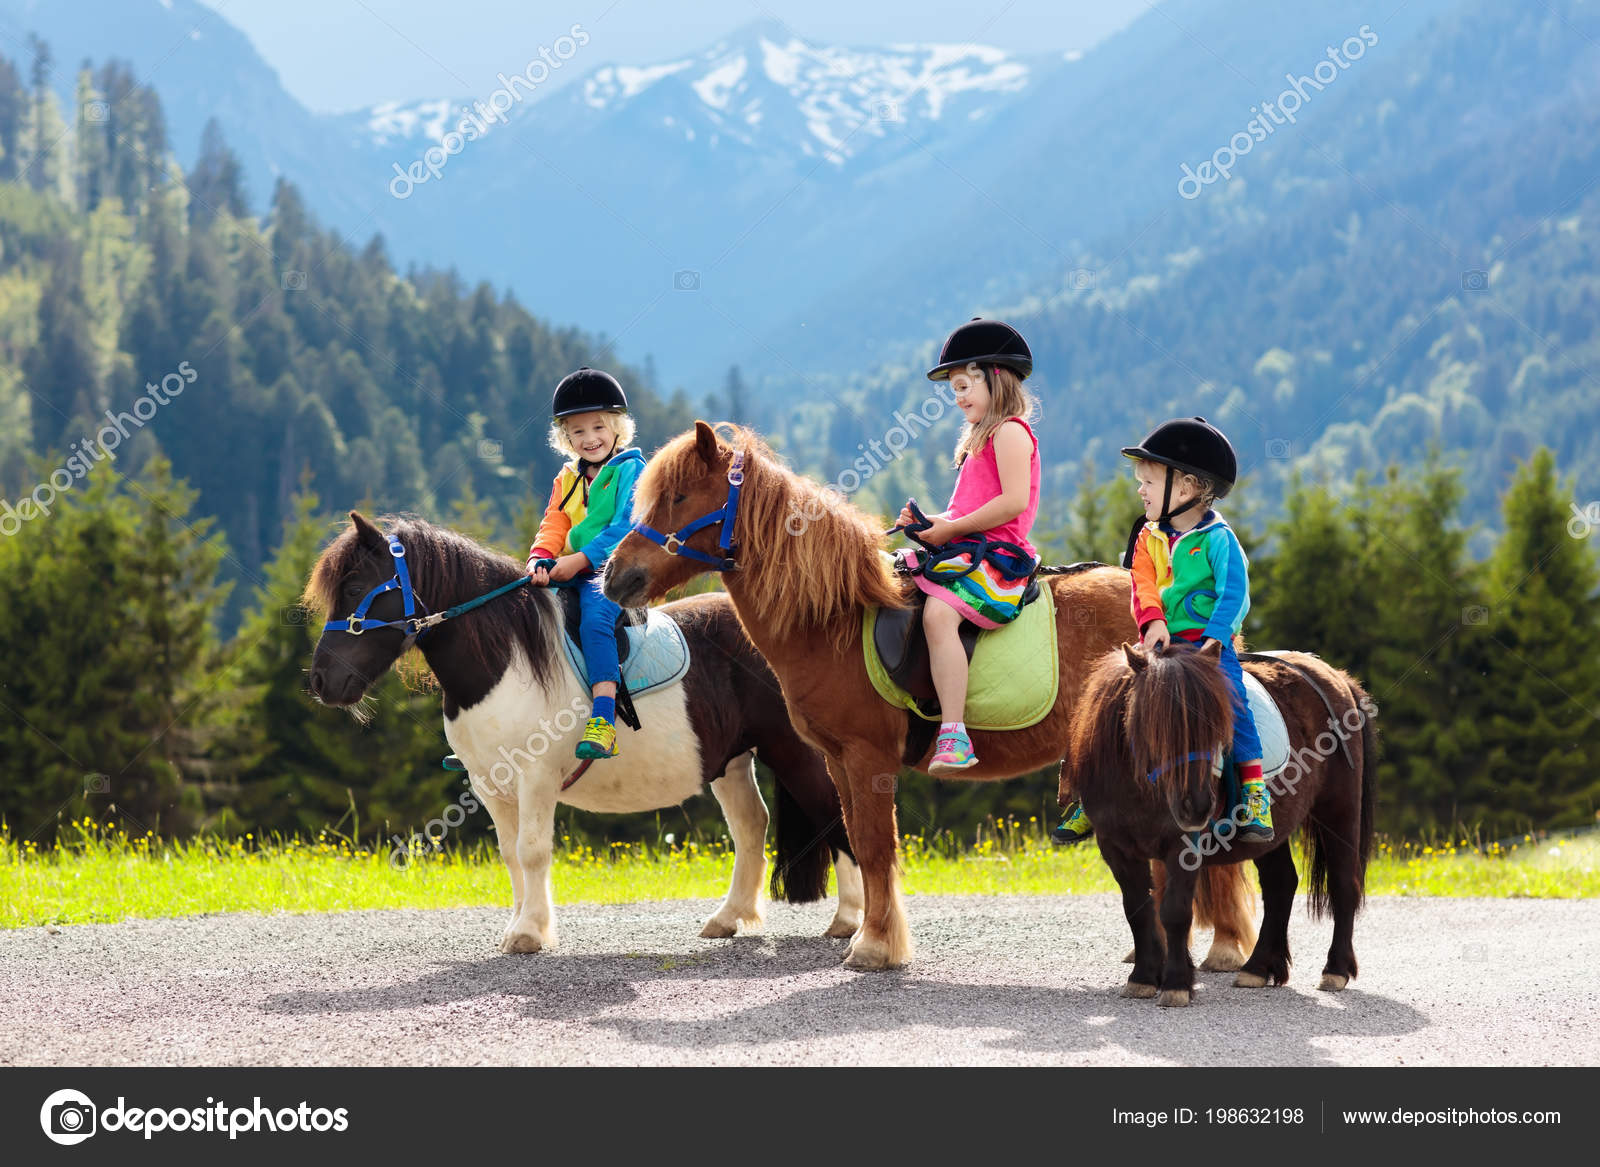 Kids Riding Pony In The Alps Mountains Family Spring Vacation On Horse Ranch Austria Tirol Children Ride Horses Kid Taking Care Of Animal